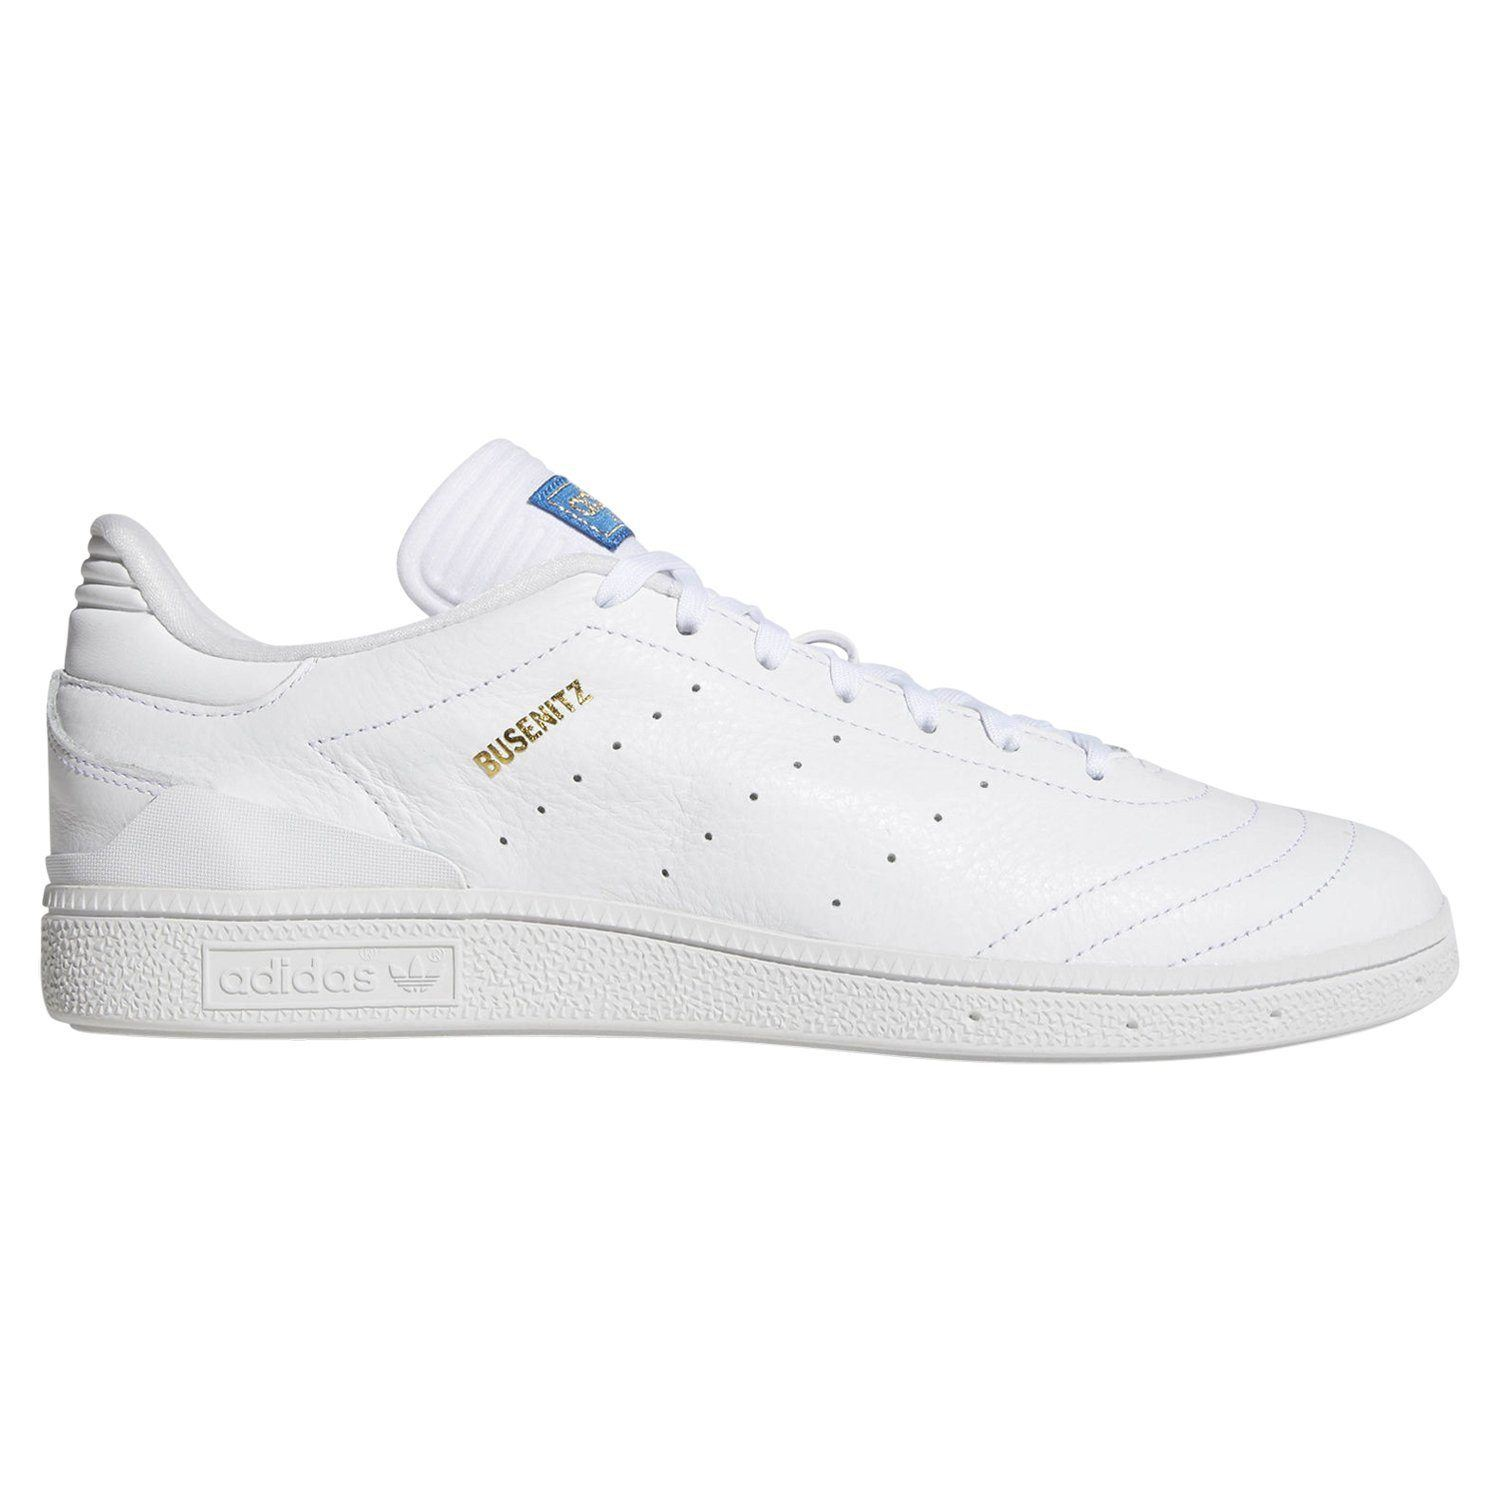 Details about adidas ORIGINALS MEN S BUSENITZ RX SKATE SHOES TRAINERS WHITE  SKATEBOARDING NEW e15fc368a